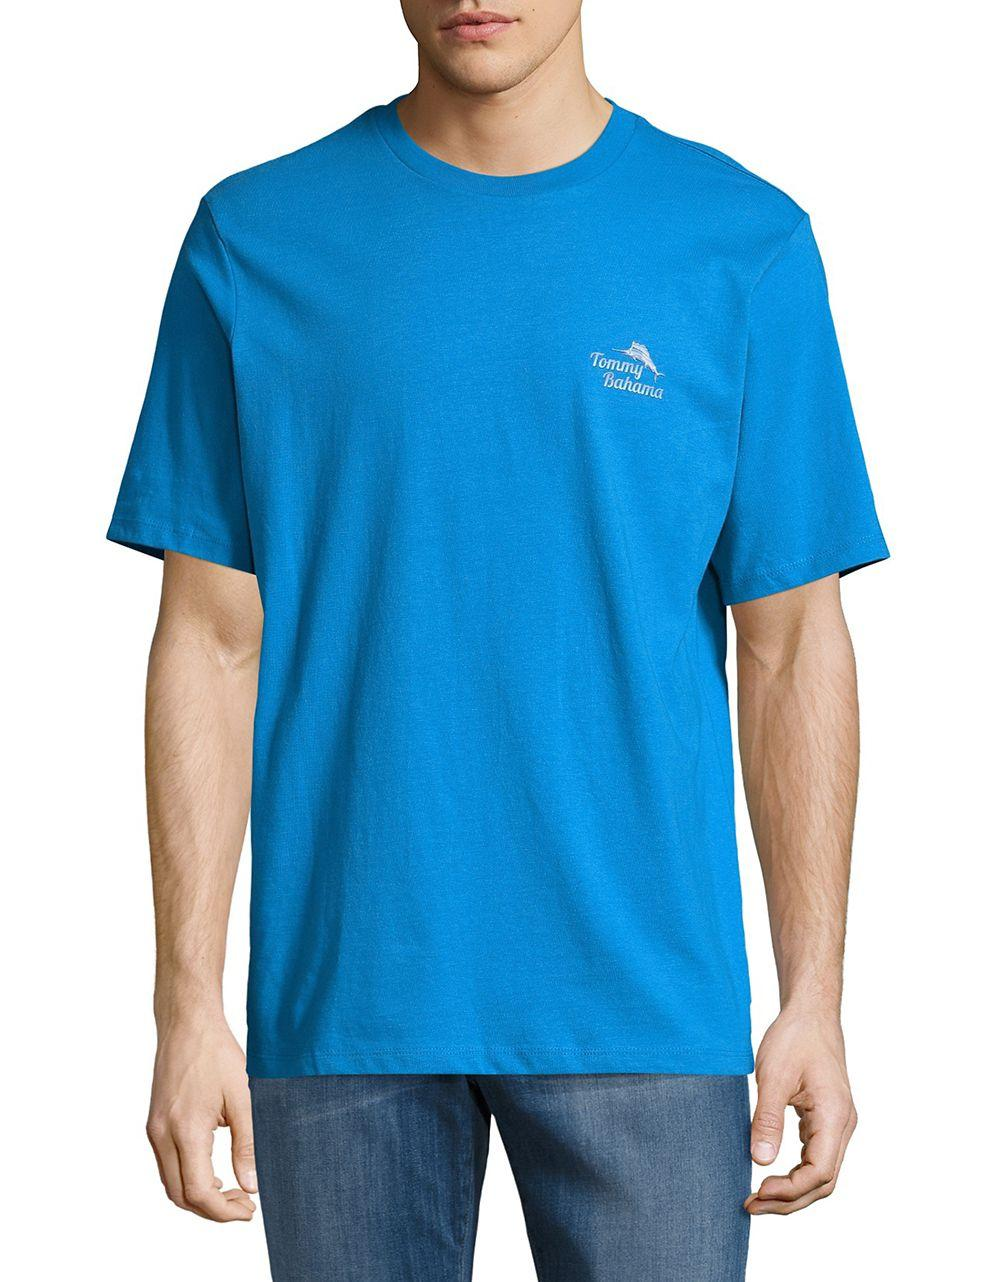 Lyst Tommy Bahama Printed Cotton Tee In Blue For Men